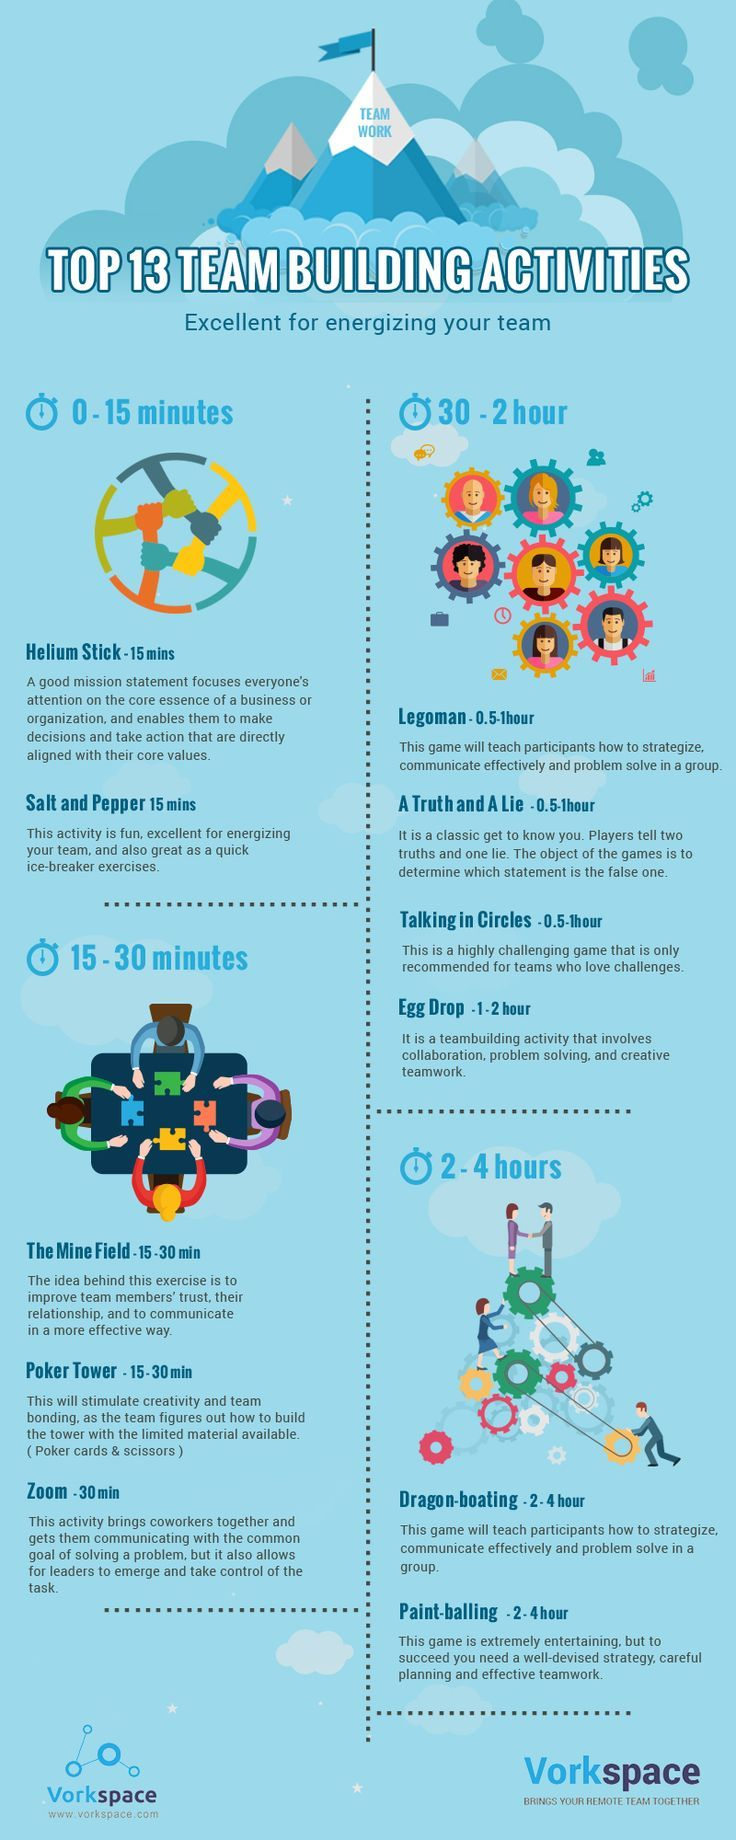 Top 13 Remote Team Building Activities #infographic